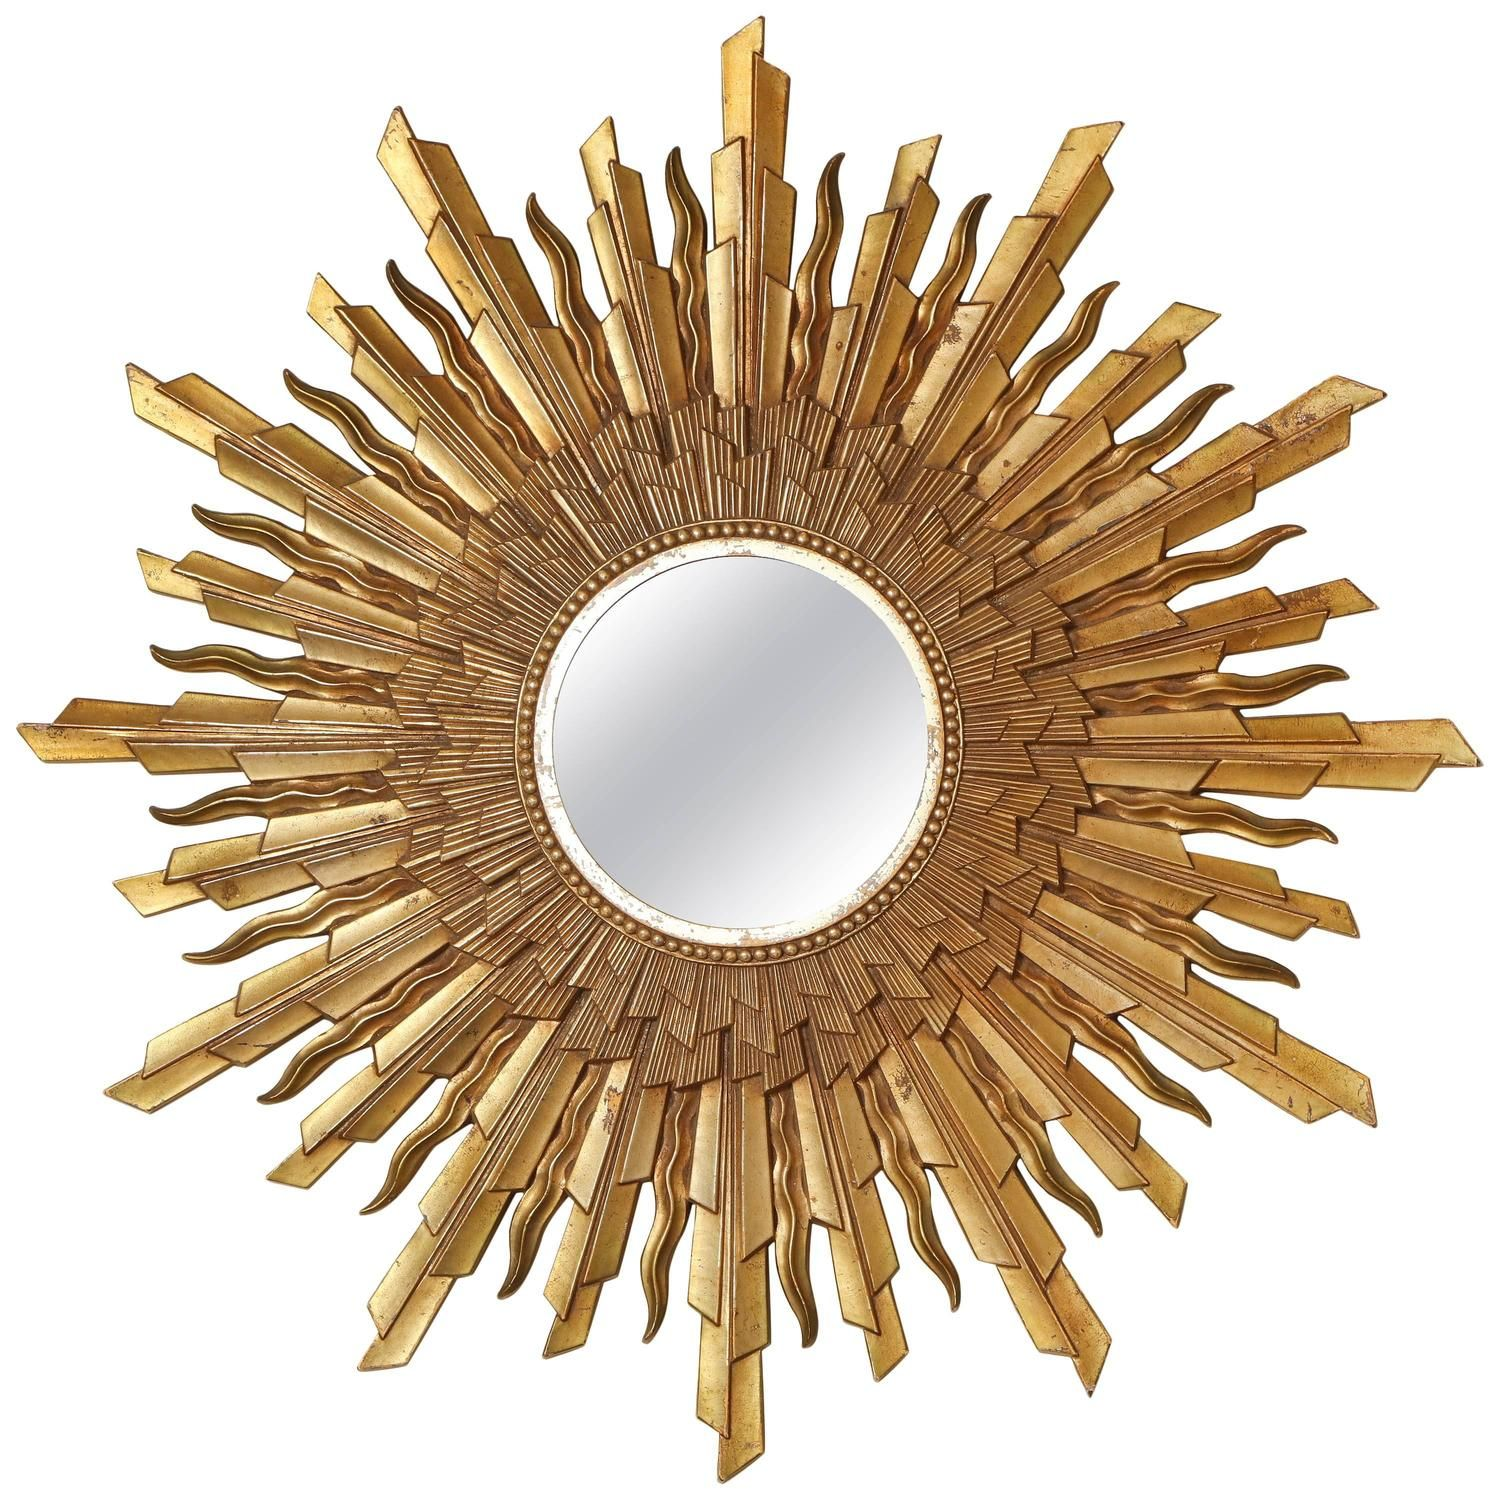 Mid-Century Modern Gold Starburst, Sunburst Framed Mirror | From a unique collection of antique and modern sunburst mirrors at https://www.1stdibs.com/furniture/mirrors/sunburst-mirrors/